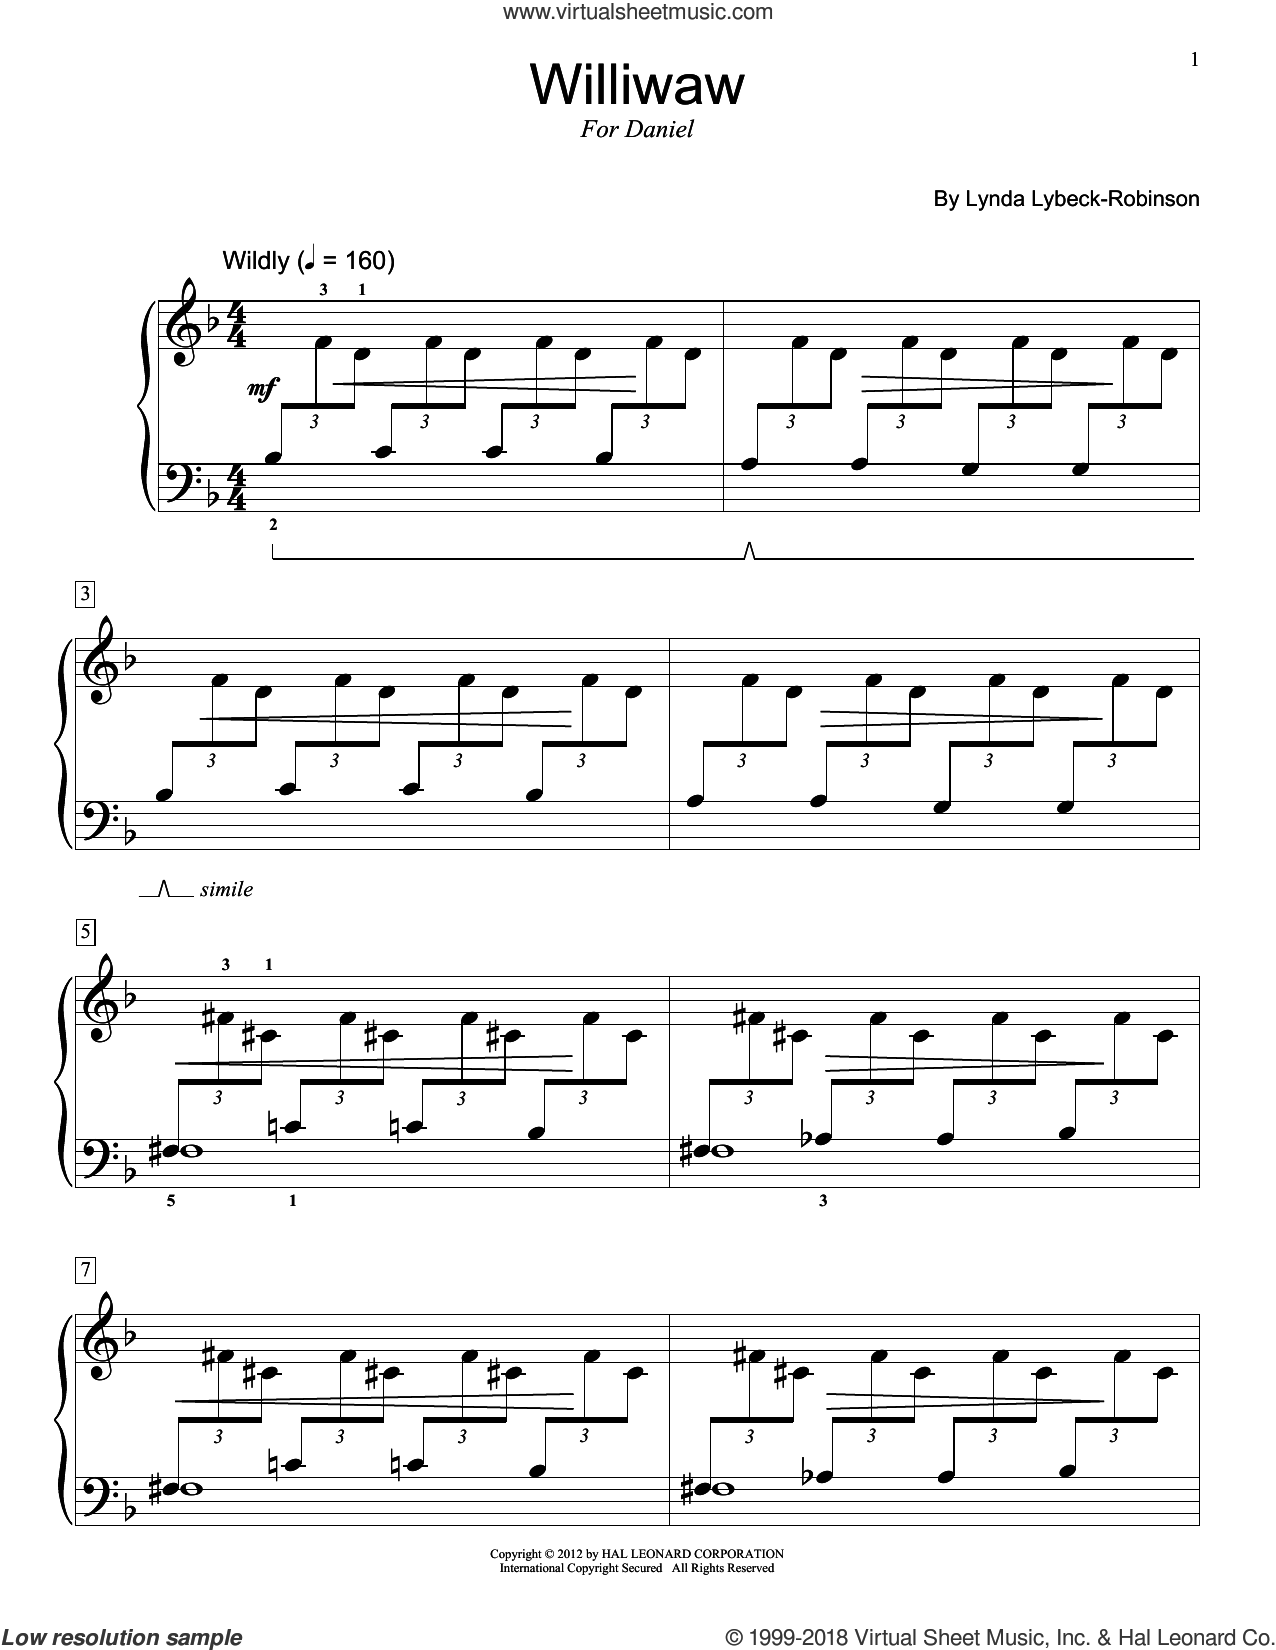 Williwaw sheet music for piano solo (elementary) by Lynda Lybeck-Robinson